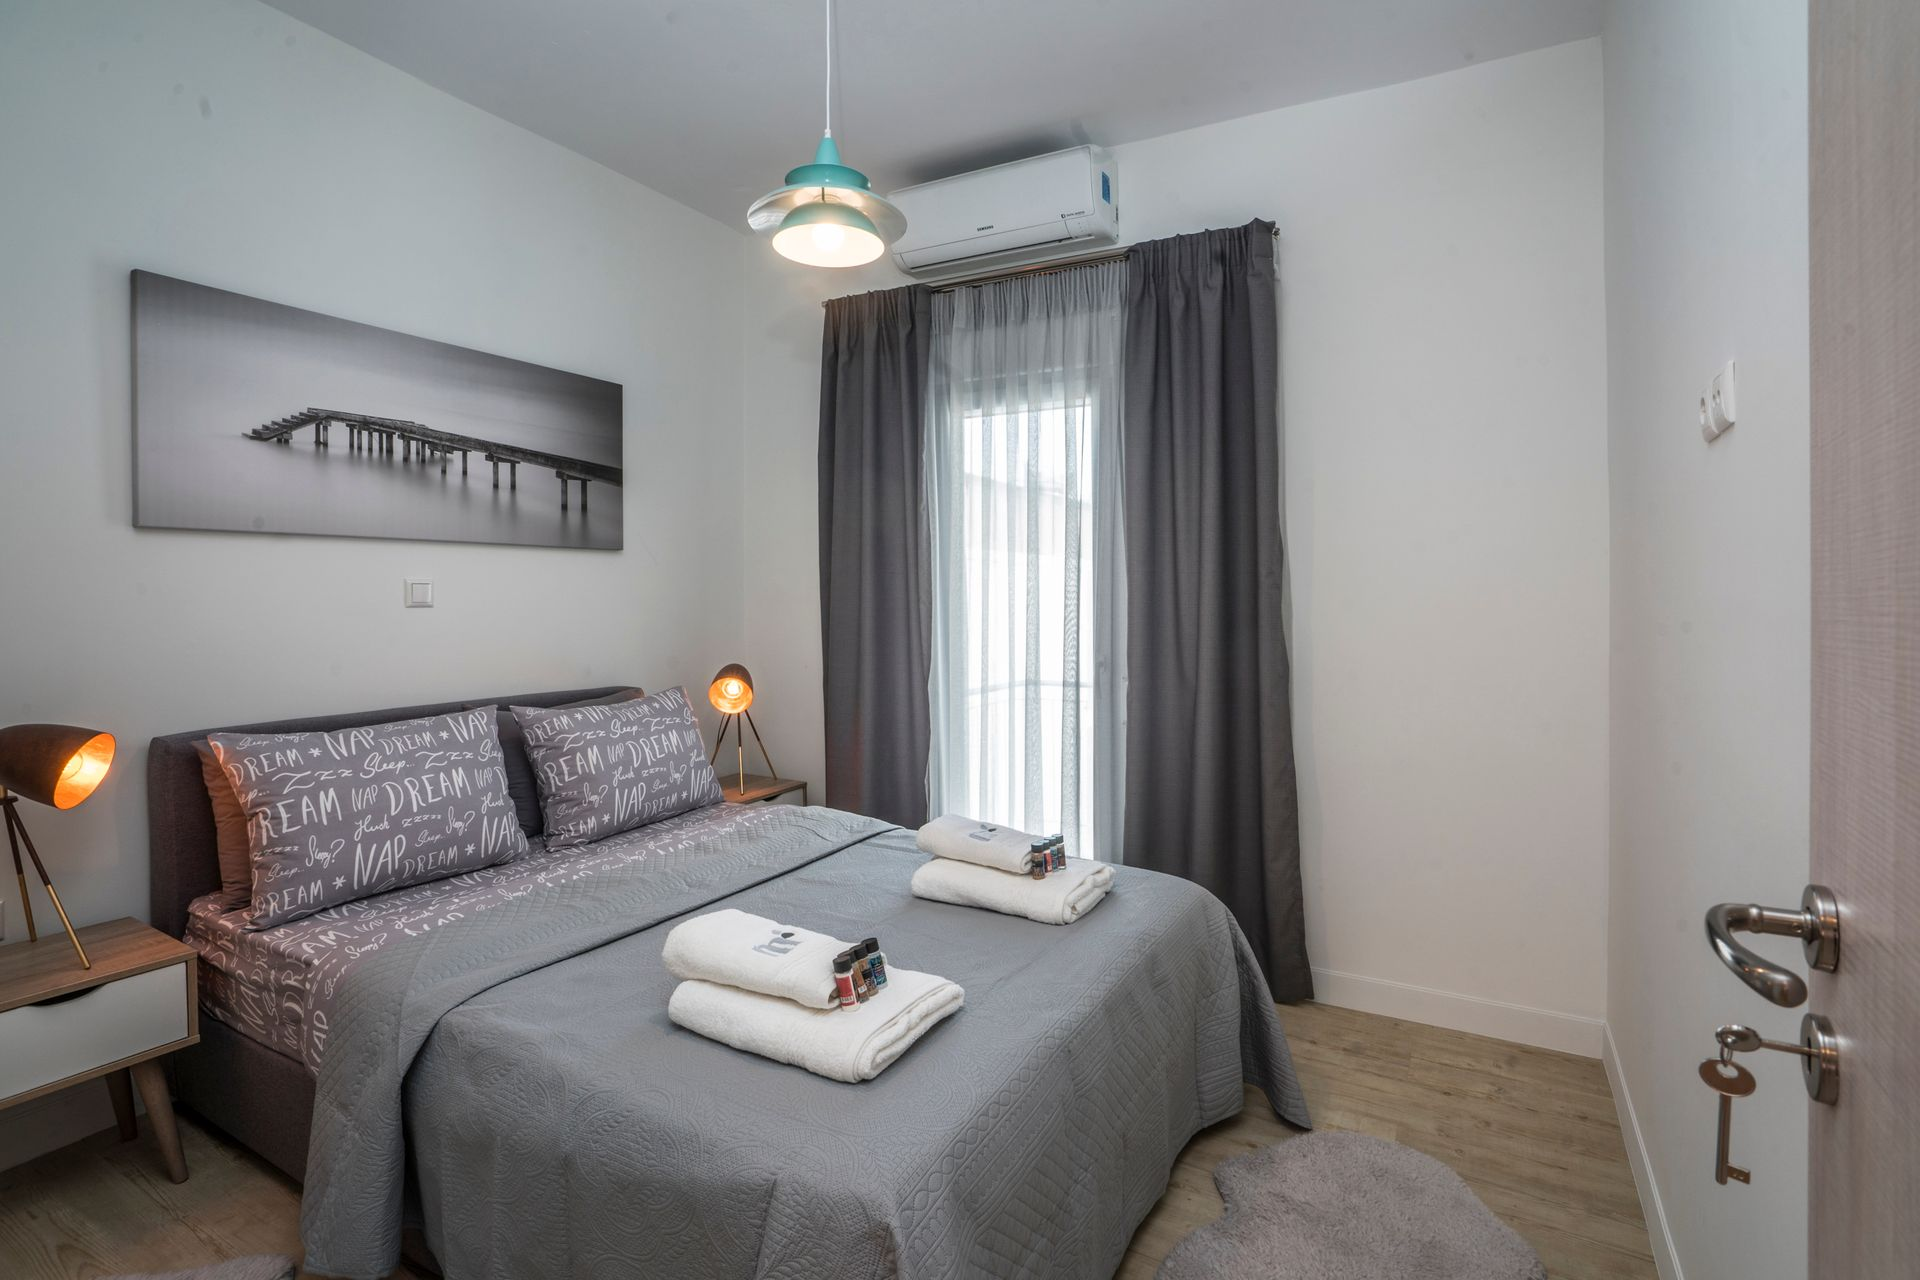 Athens Morum City Apartments Formionos - Αθήνα ✦ 2